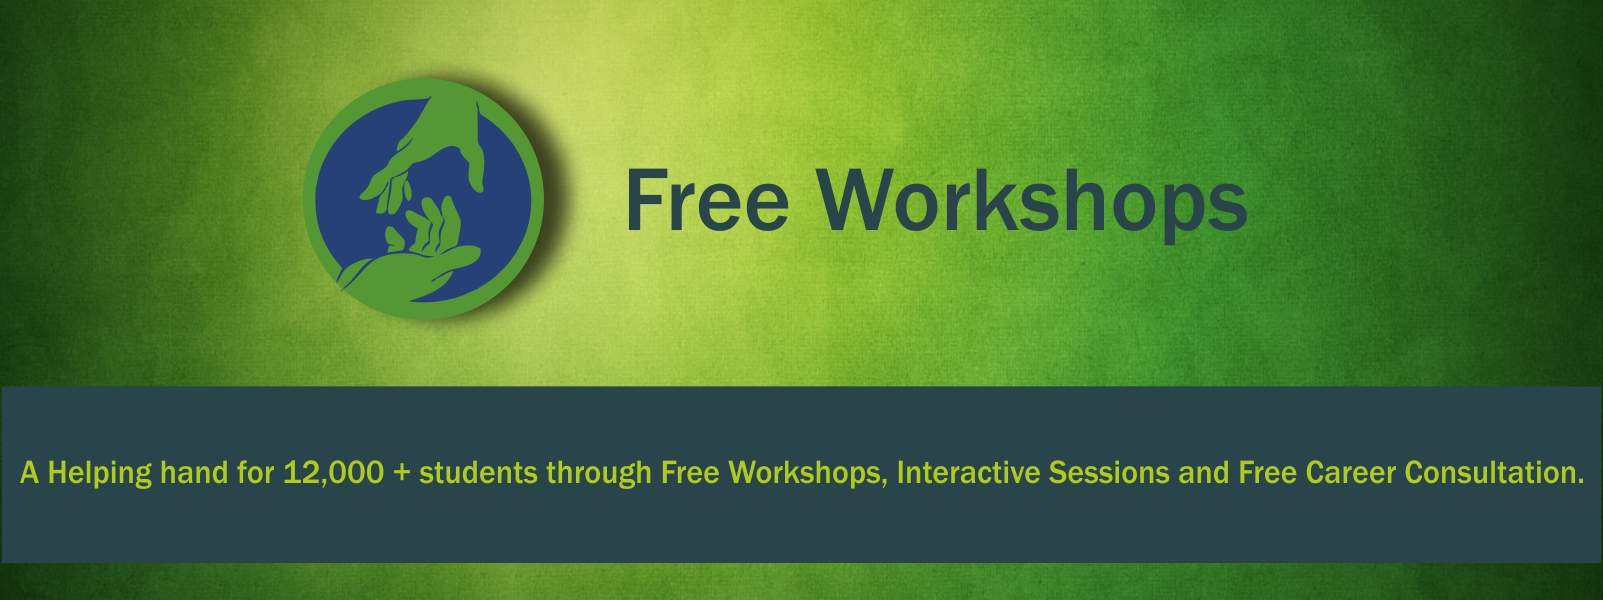 tta free workshops